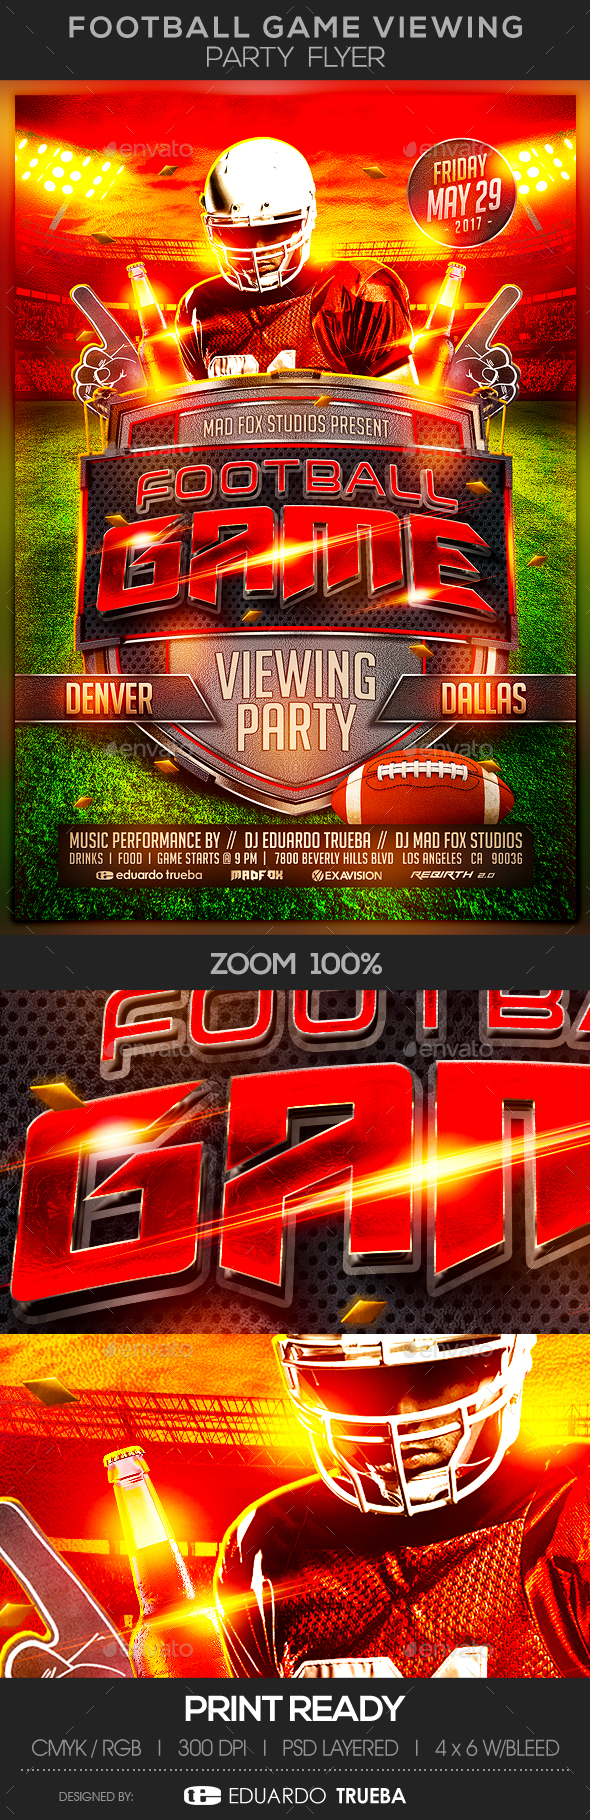 Football Game Viewing Party Flyer - Sports Events